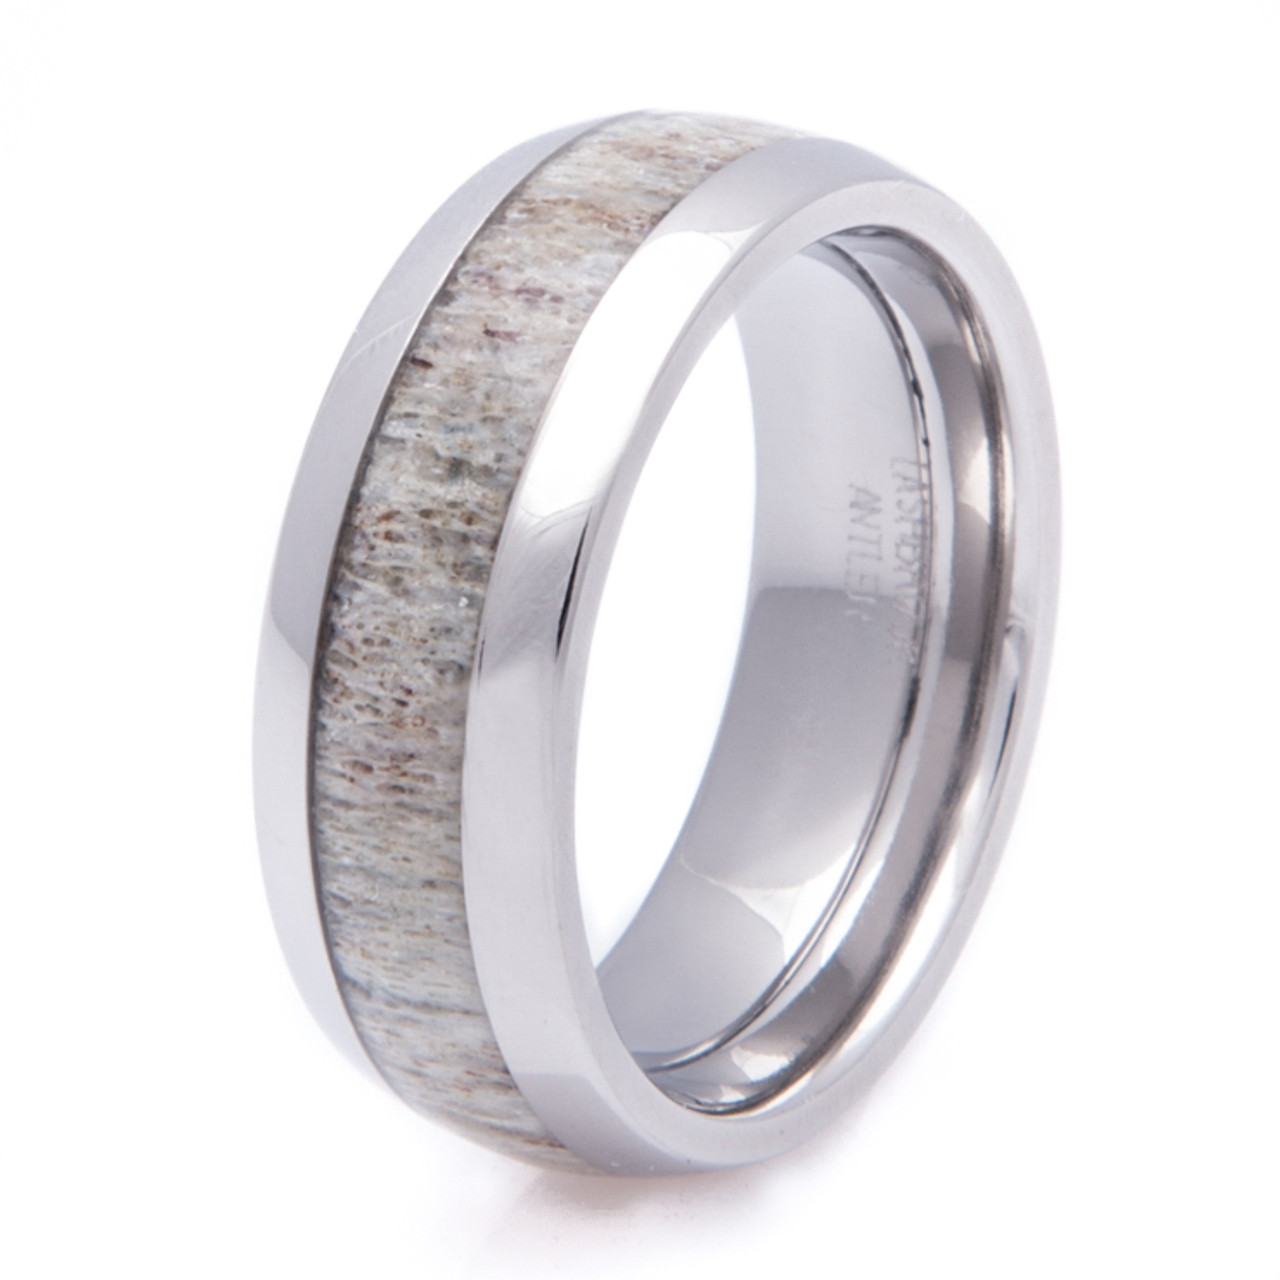 Mens Titanium Deer Antler Wedding Ring TitaniumBuzz